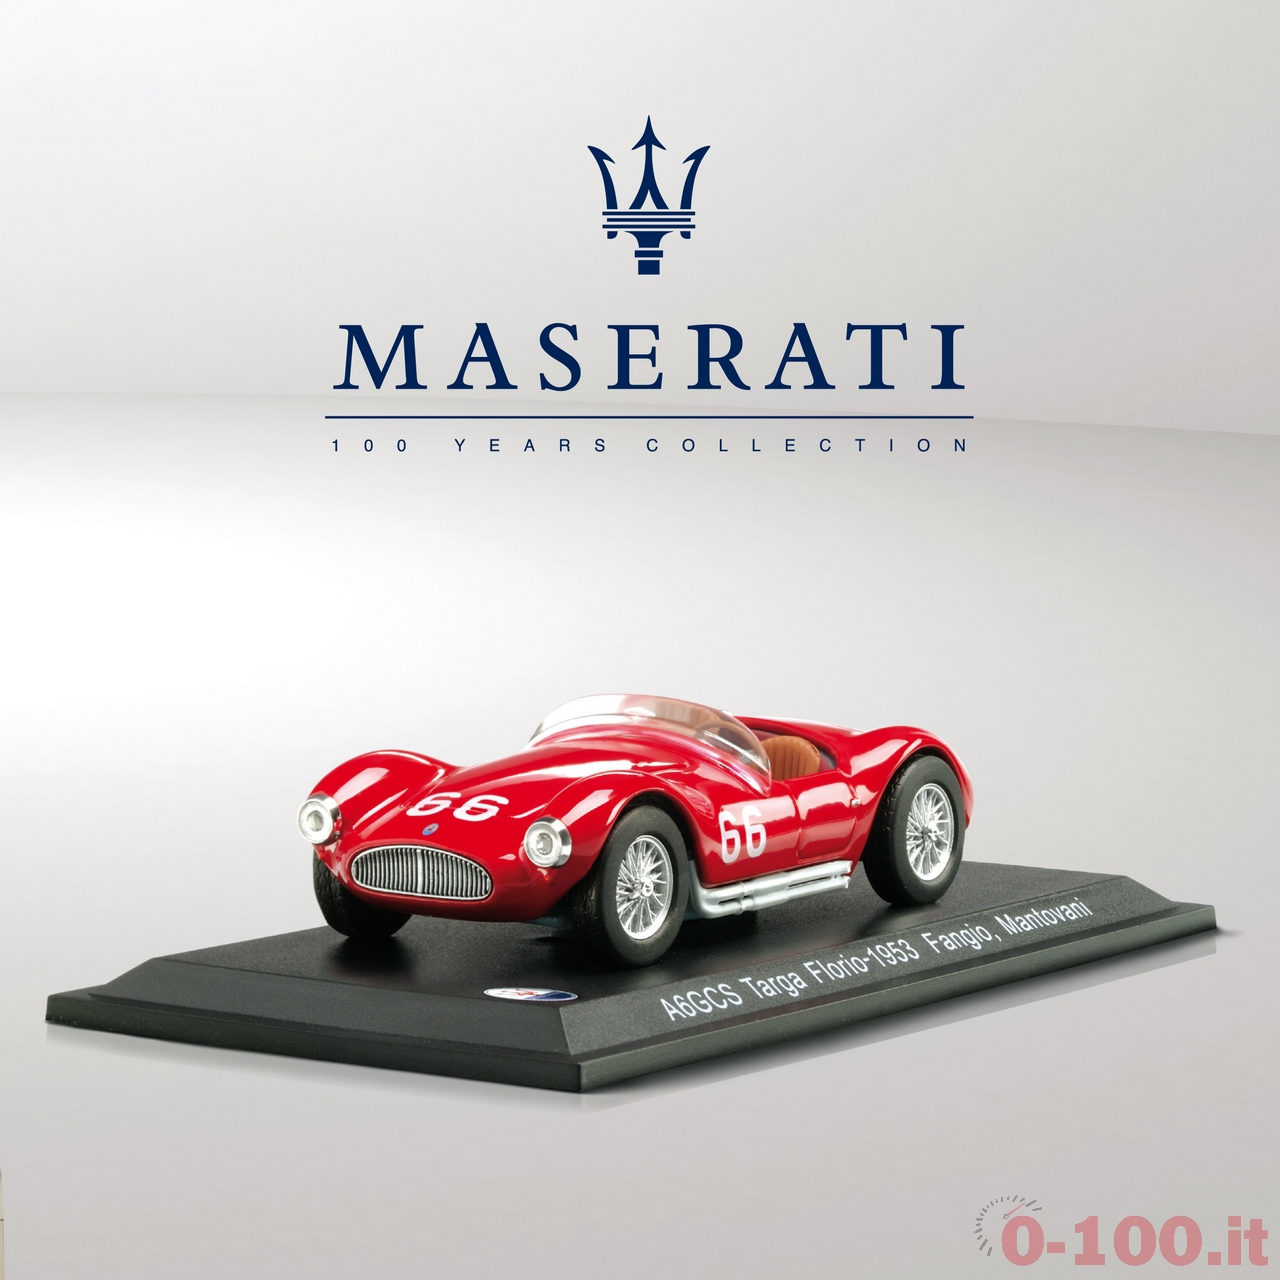 Maserati-100-Years-Collection-collateral_Gazzetta_prezzo_price0-100_5